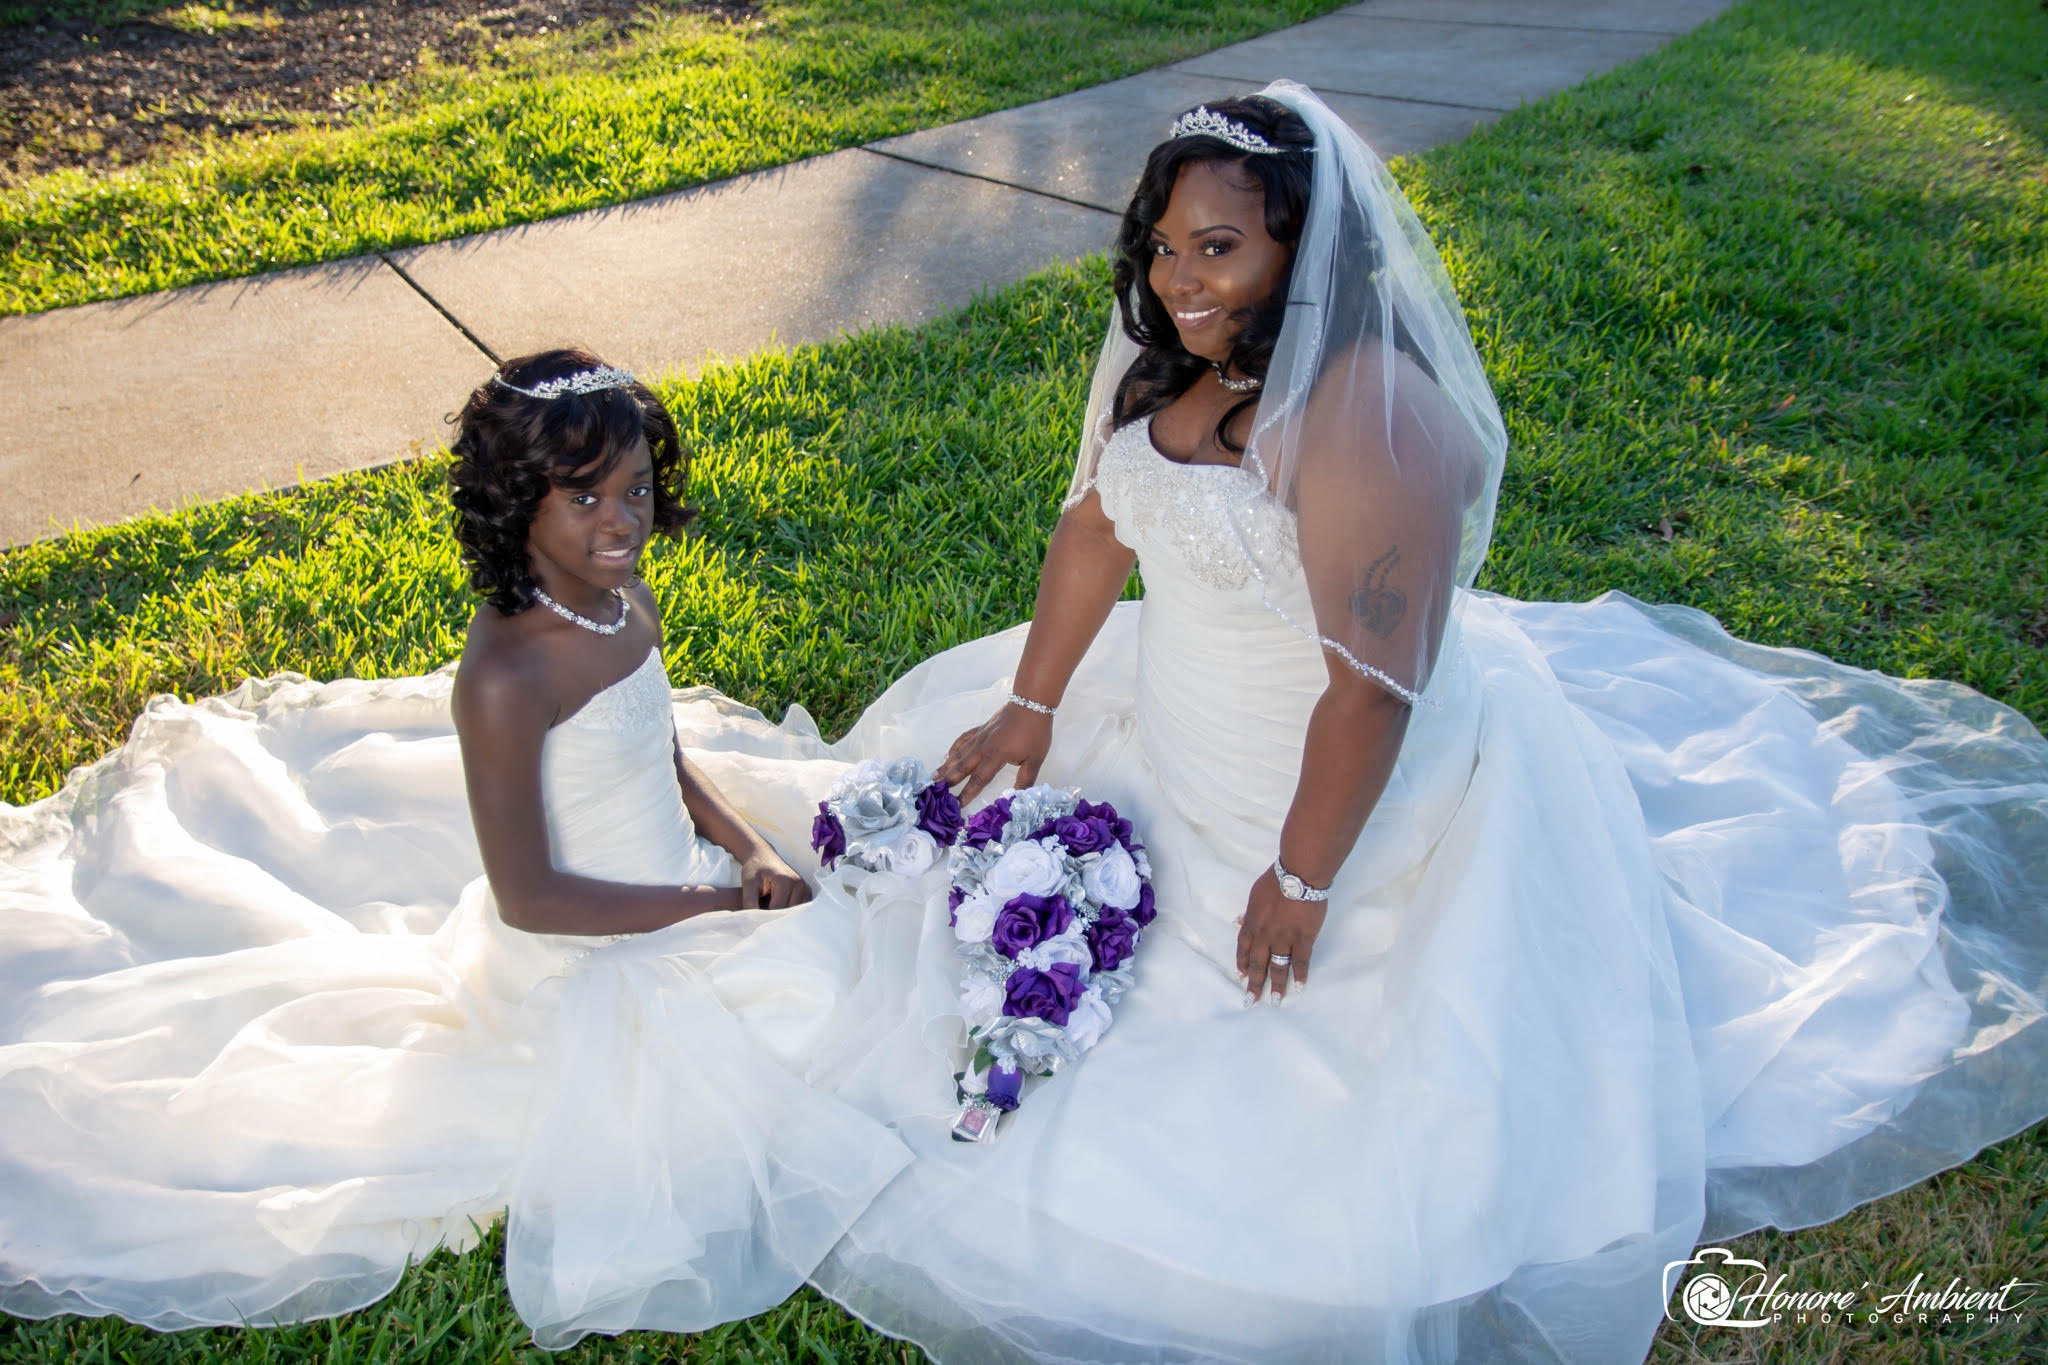 Matching flower girl and wedding dress